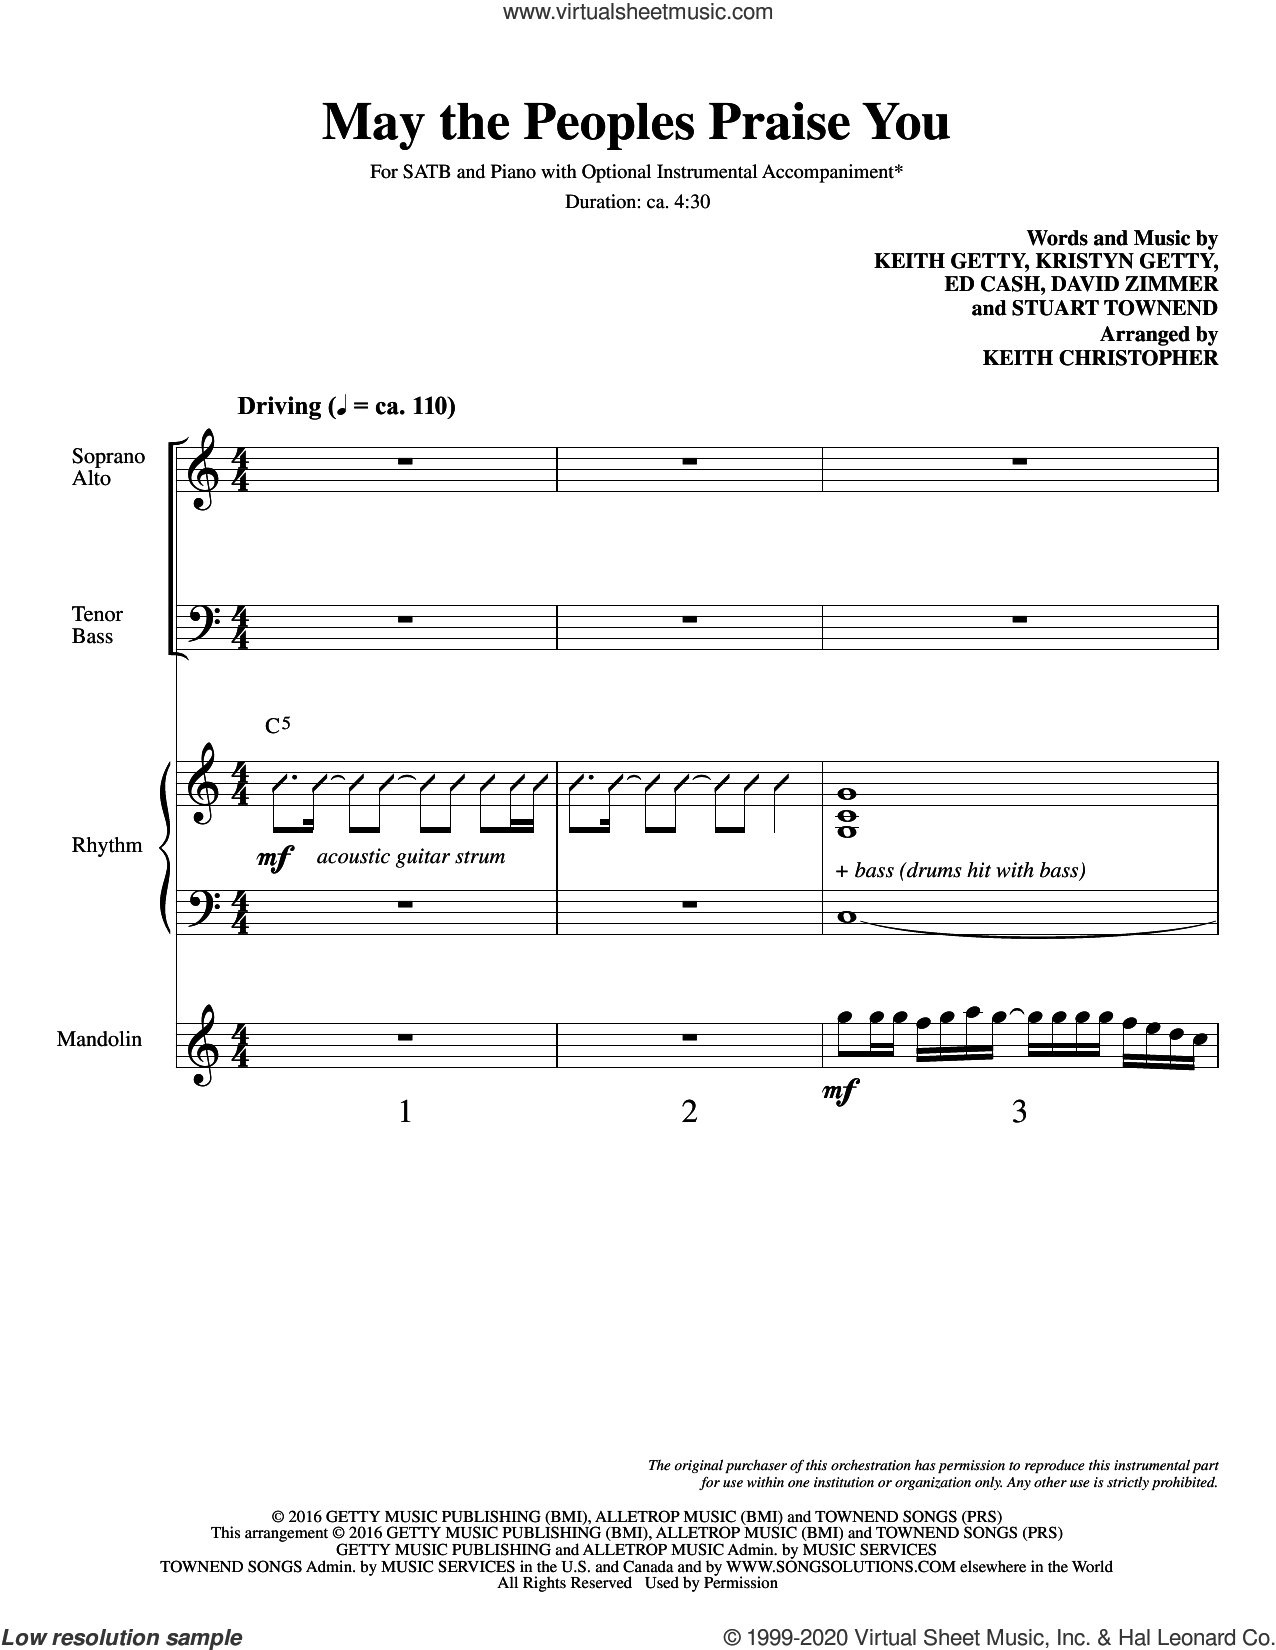 May the Peoples Praise You (COMPLETE) sheet music for orchestra/band by Keith Christopher, David Zimmer, Ed Cash, Keith & Kristyn Getty, Keith Getty, Kristyn Getty and Stuart Townend, intermediate skill level